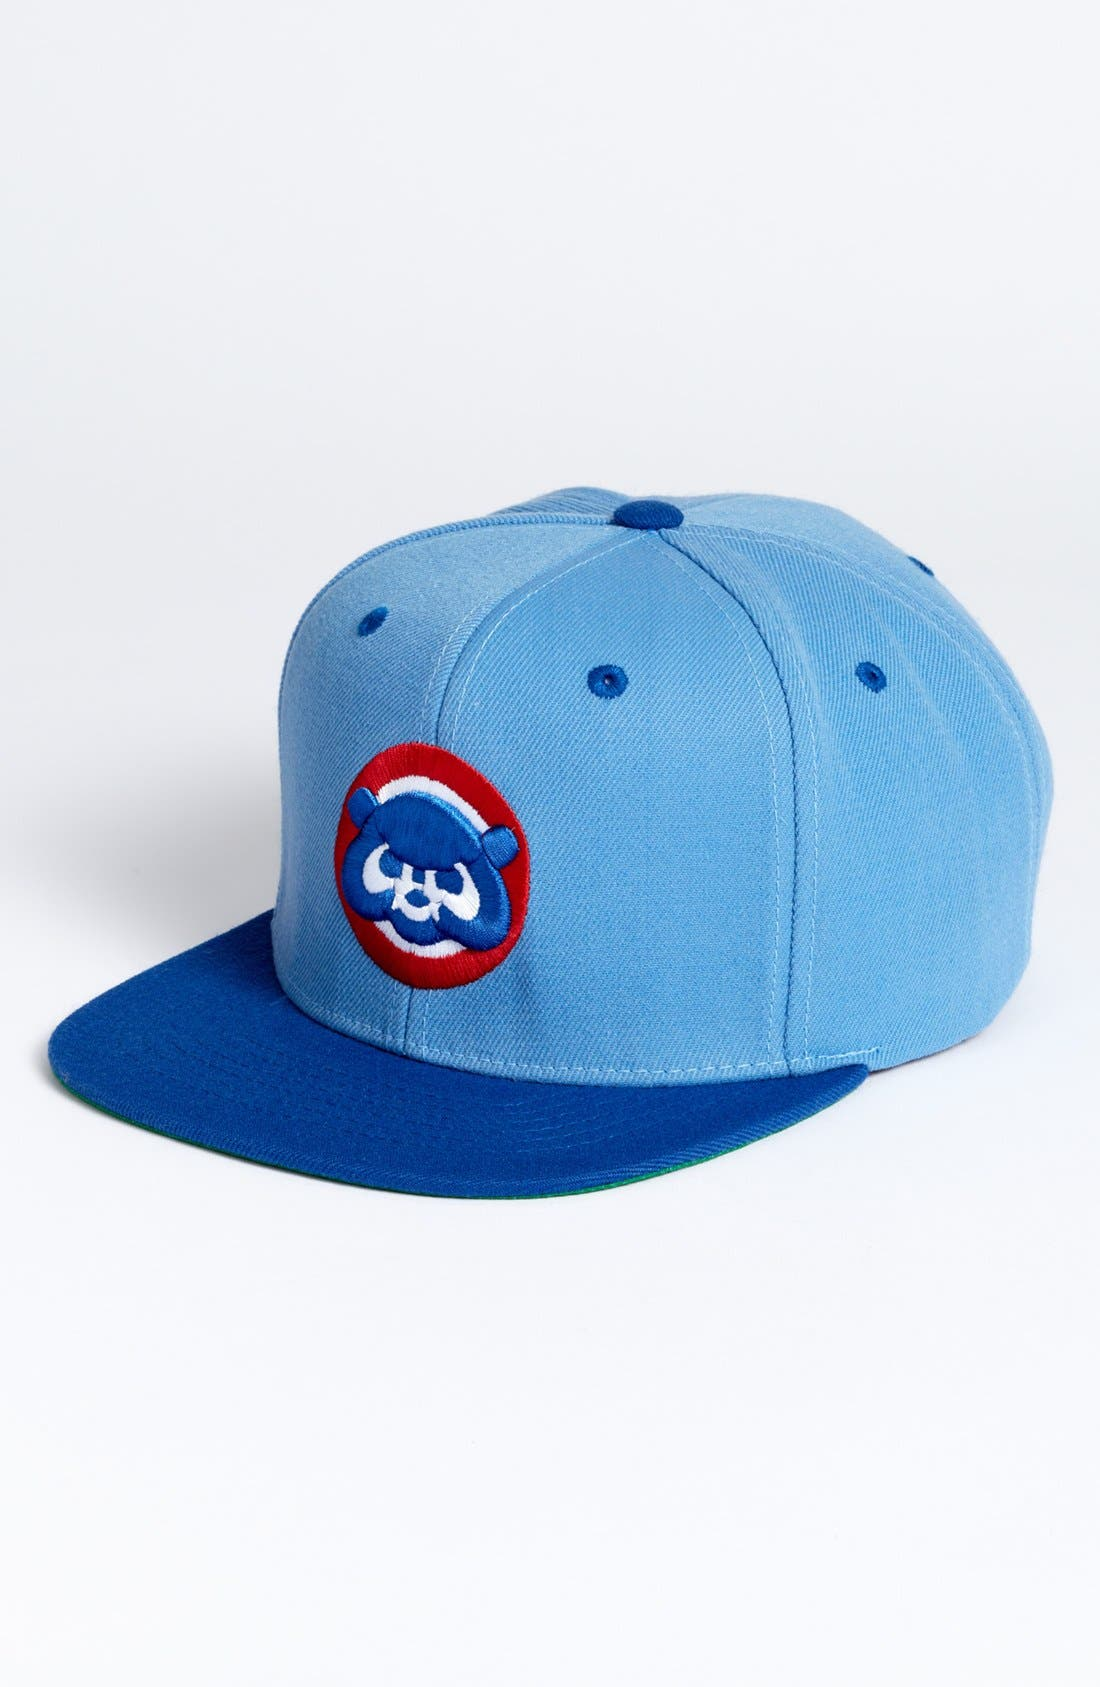 Alternate Image 1 Selected - American Needle 'Chicago Cubs - Back 2 Front' Snapback Baseball Cap